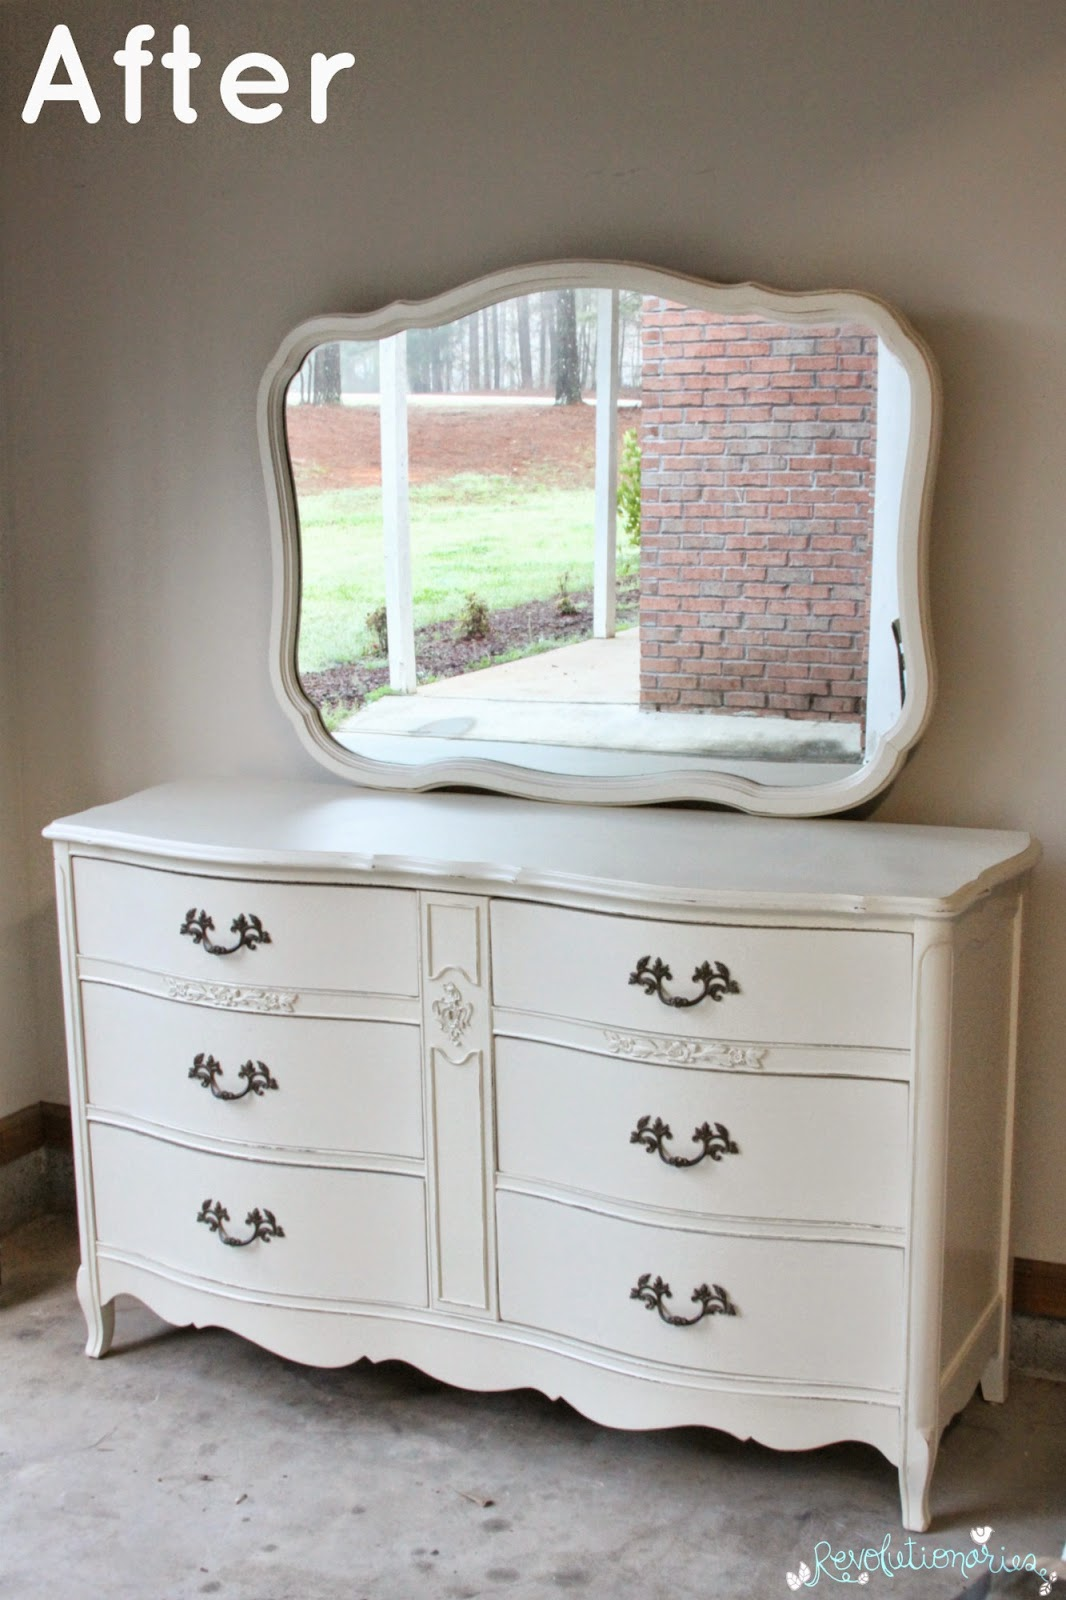 Before and After: The French Dresser with Mirror!